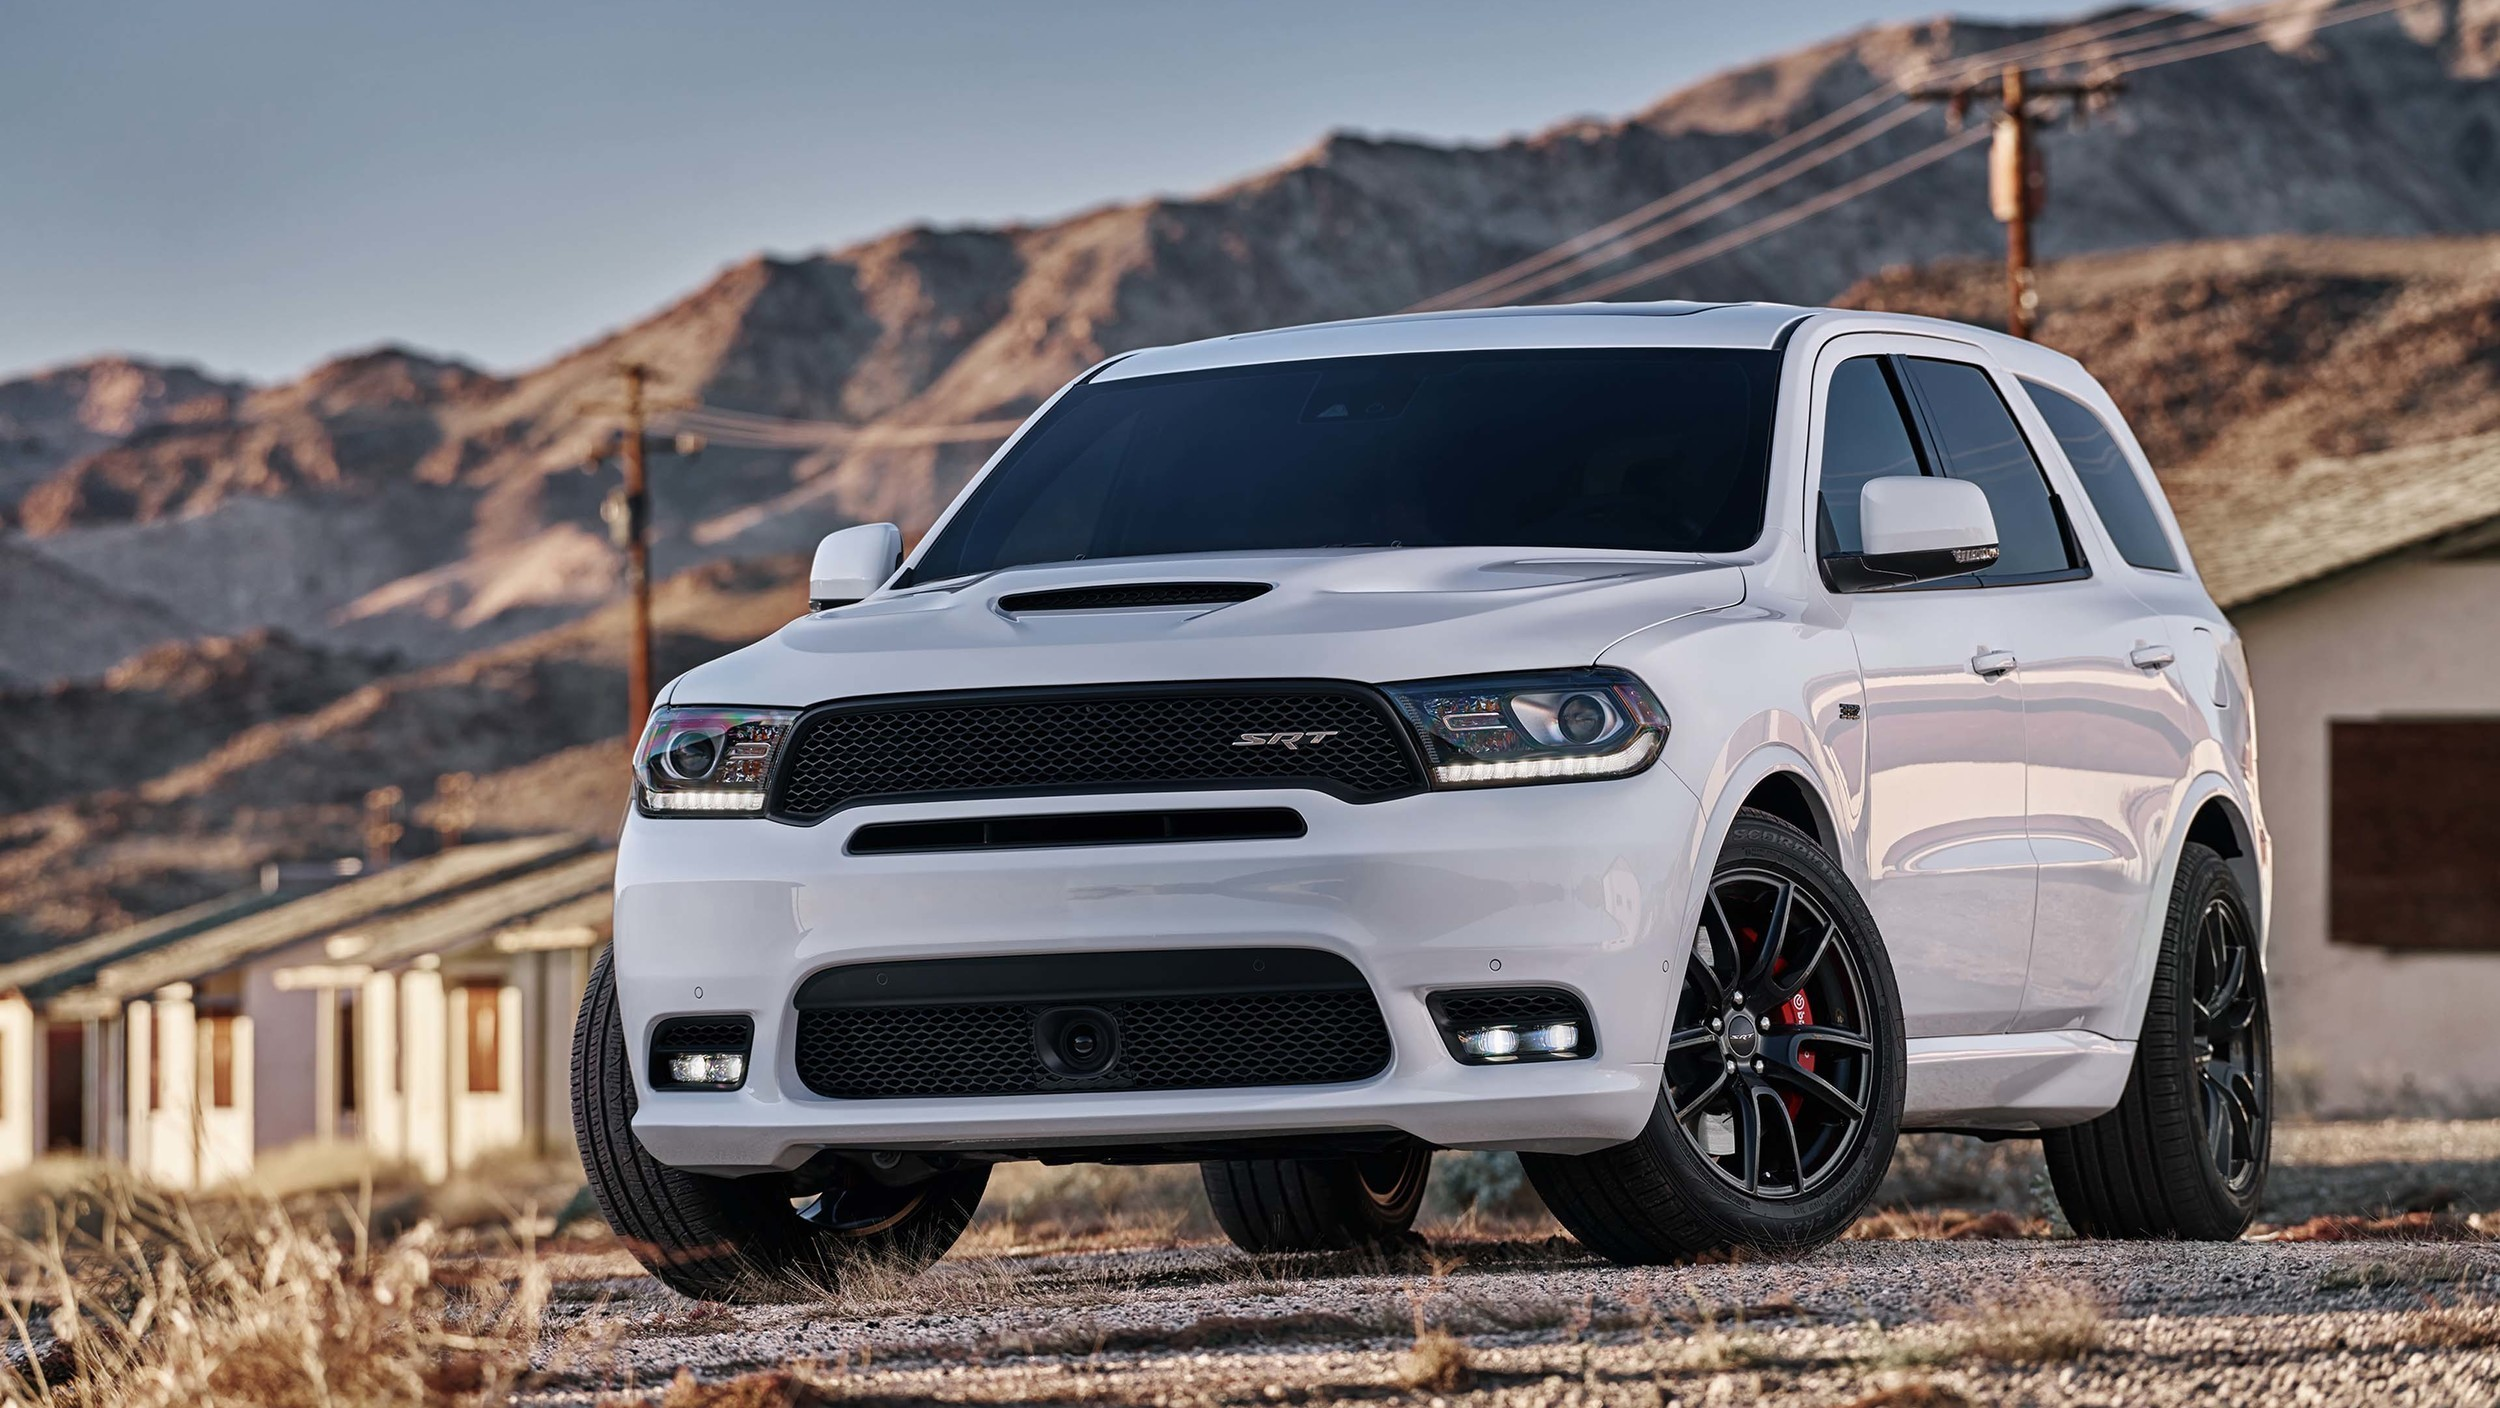 2018 dodge durango srt revealed with a 475 hp 470 lb ft 6 4 liter v8 a 0 60 of 4. Black Bedroom Furniture Sets. Home Design Ideas